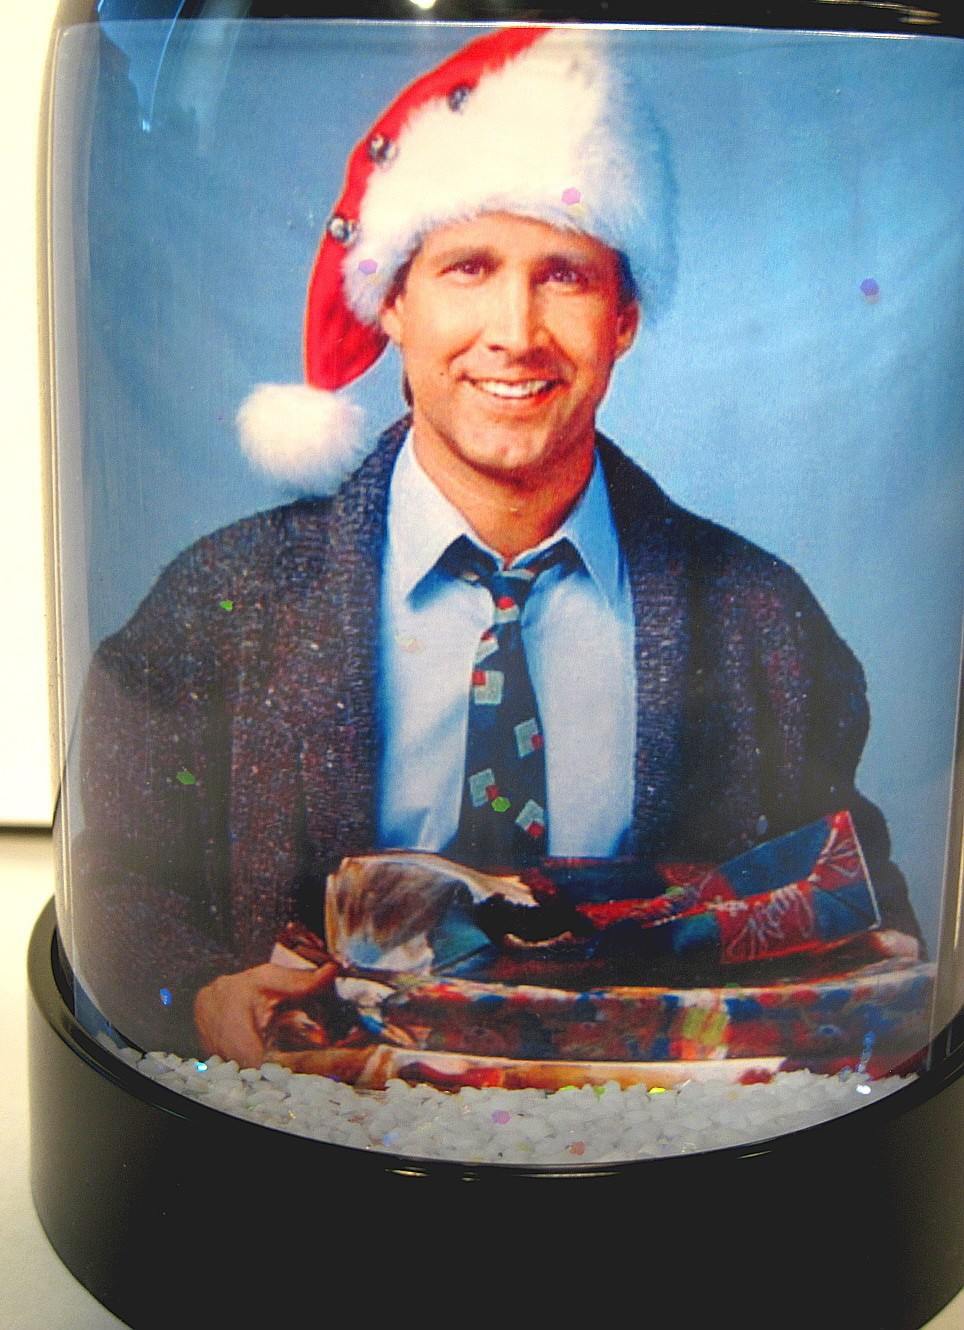 Chevy Chase Christmas Vacation.National Lampoon S Christmas Vacation Snow Globe Clark Griswold Snowglobe Chase